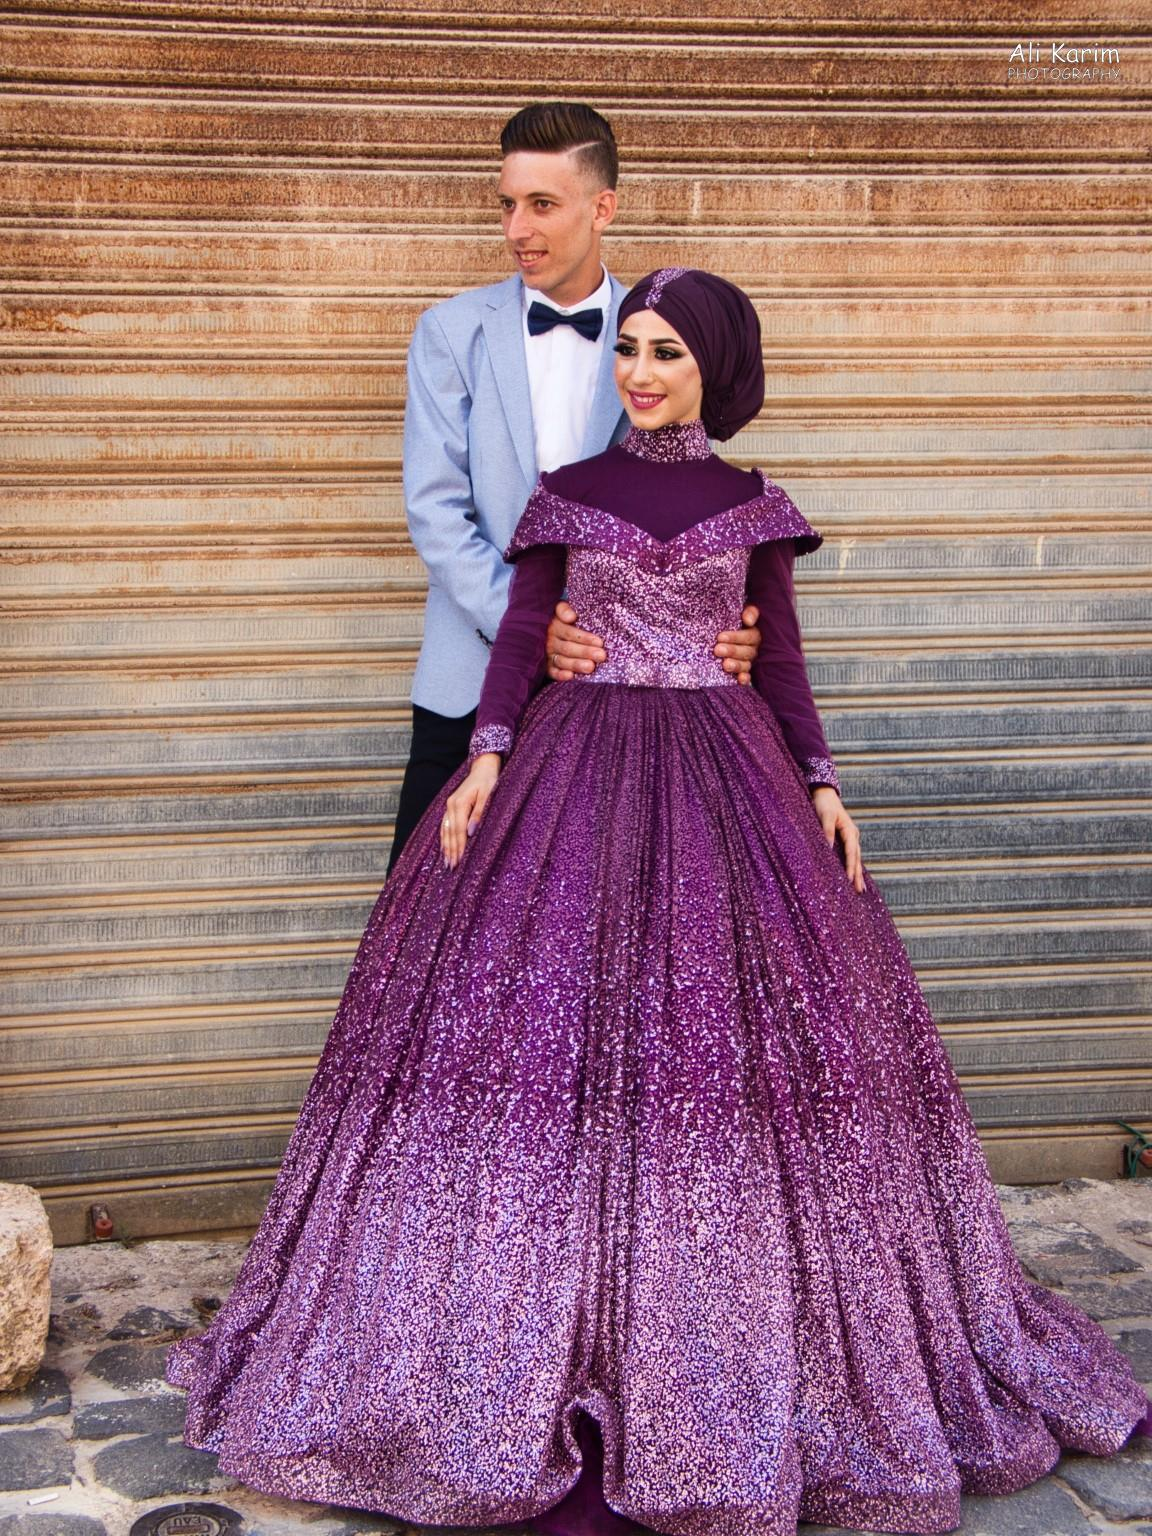 Beirut to Tripoli About to be married couple, getting pictures out of the way; I love her outfit and colors